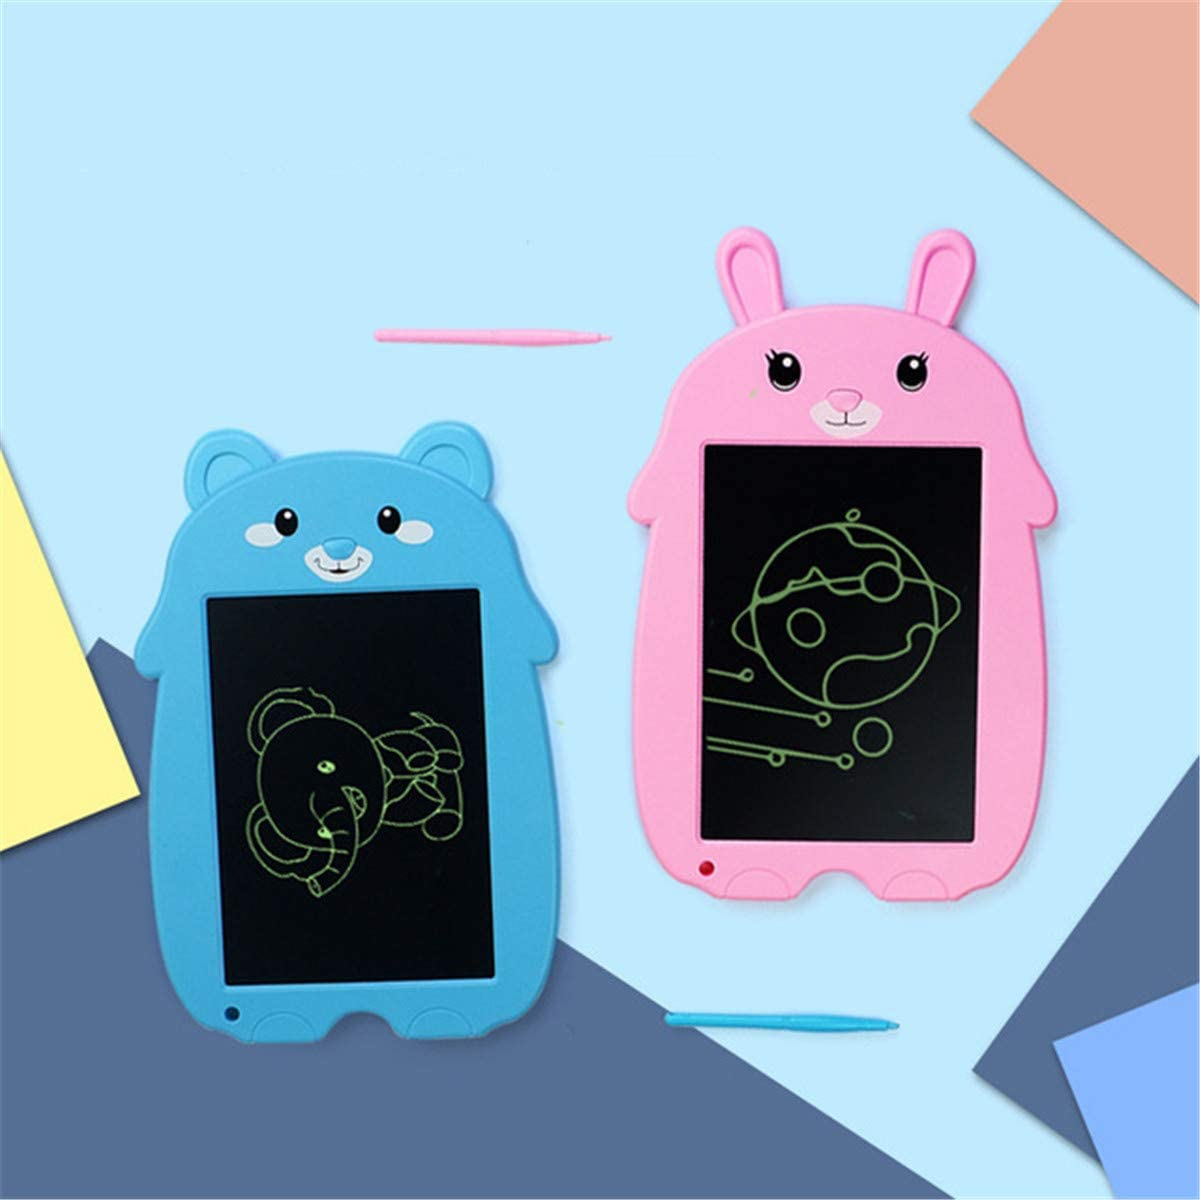 Vee U Feng 8.5-Inch LCD Writing Tablet Cartoon Image Writing Board Doodle Board Drawing Pad ,B 2 Pack for Kids and Adults at Home,School and Office